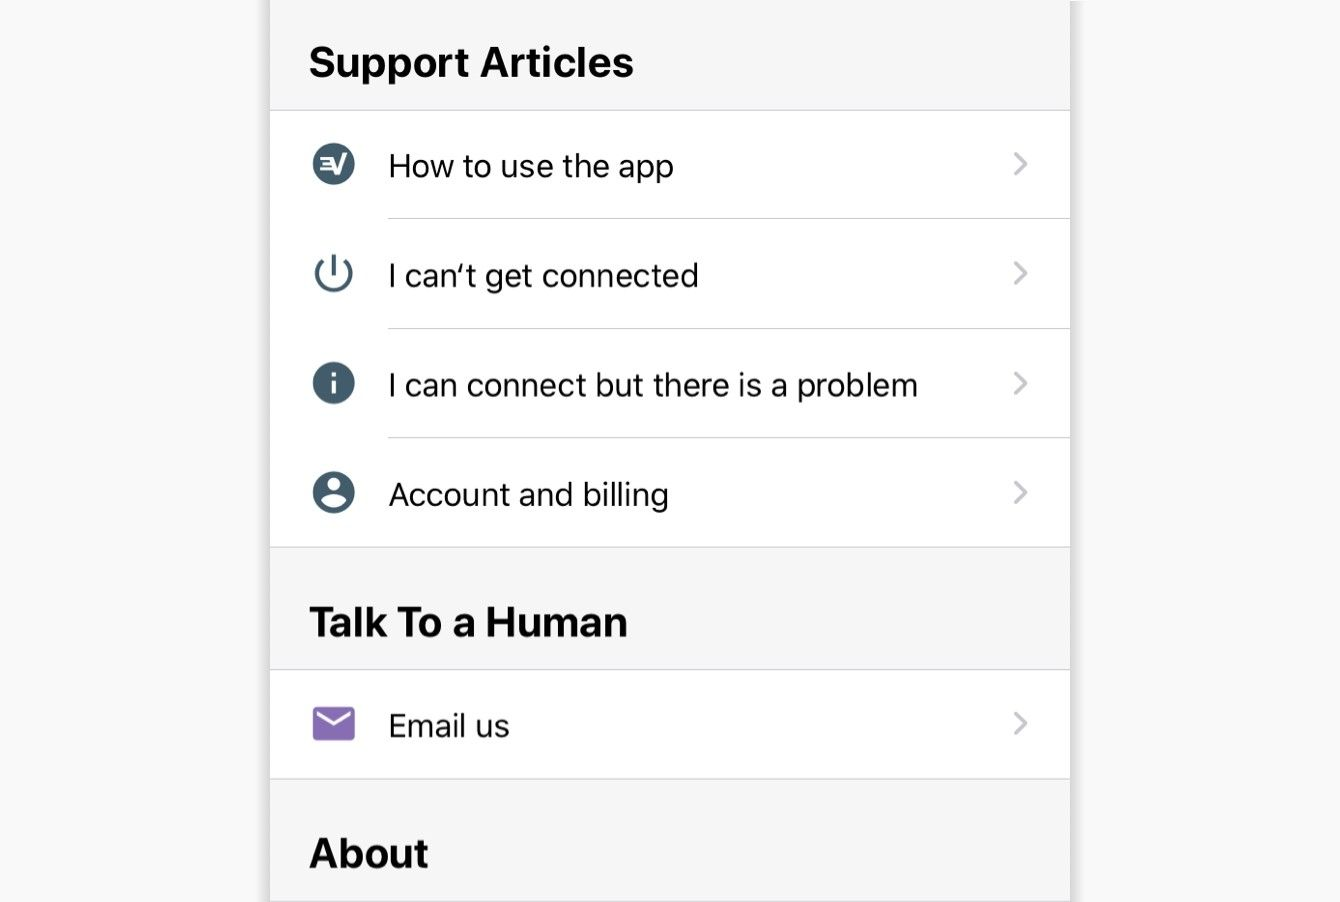 Tap a category to select an in-app support article.